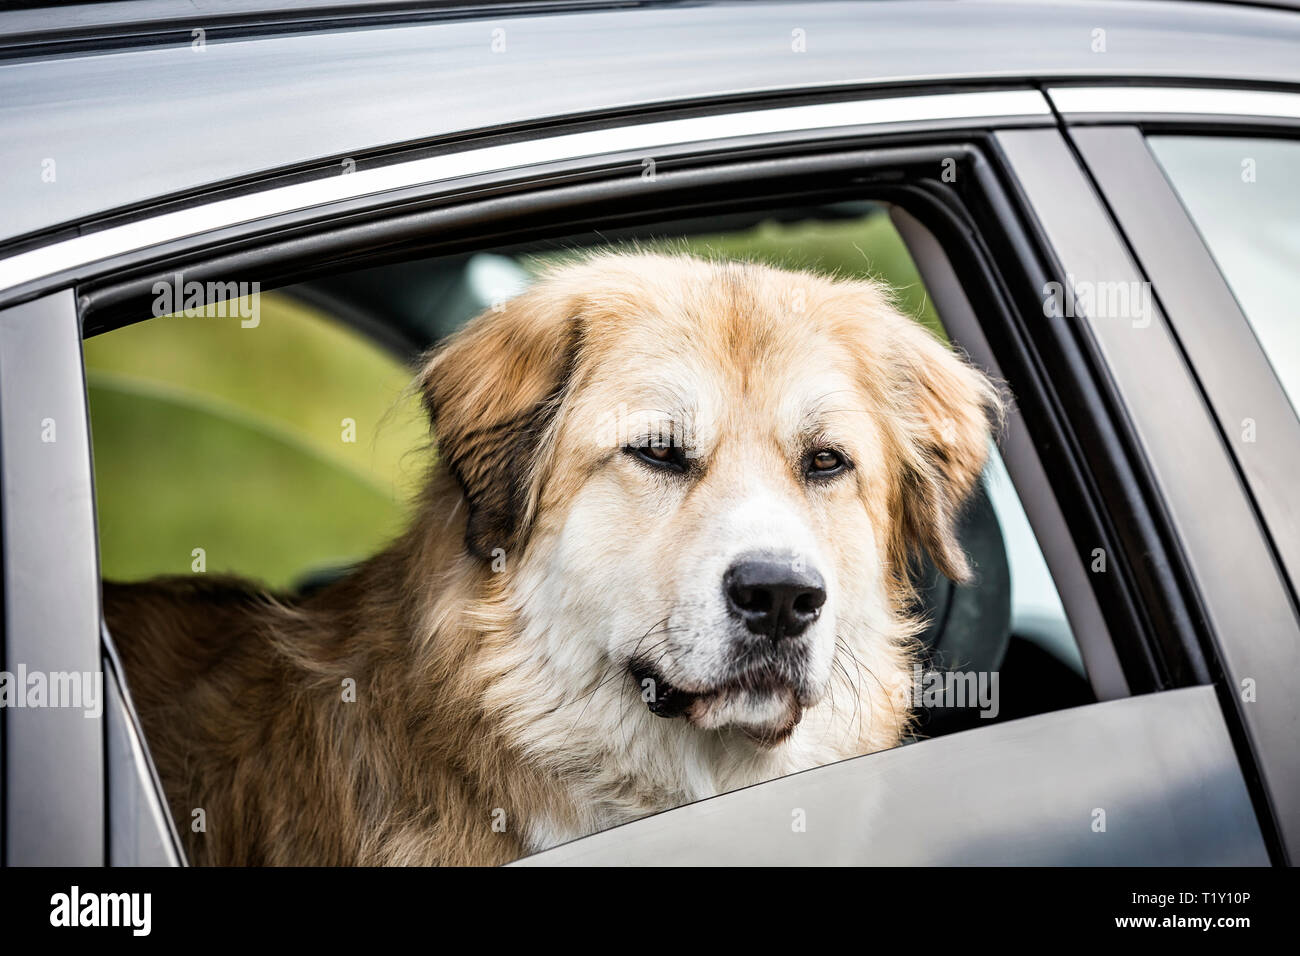 Dog going for a car ride, Winnipeg, Manitoba, Canada. - Stock Image